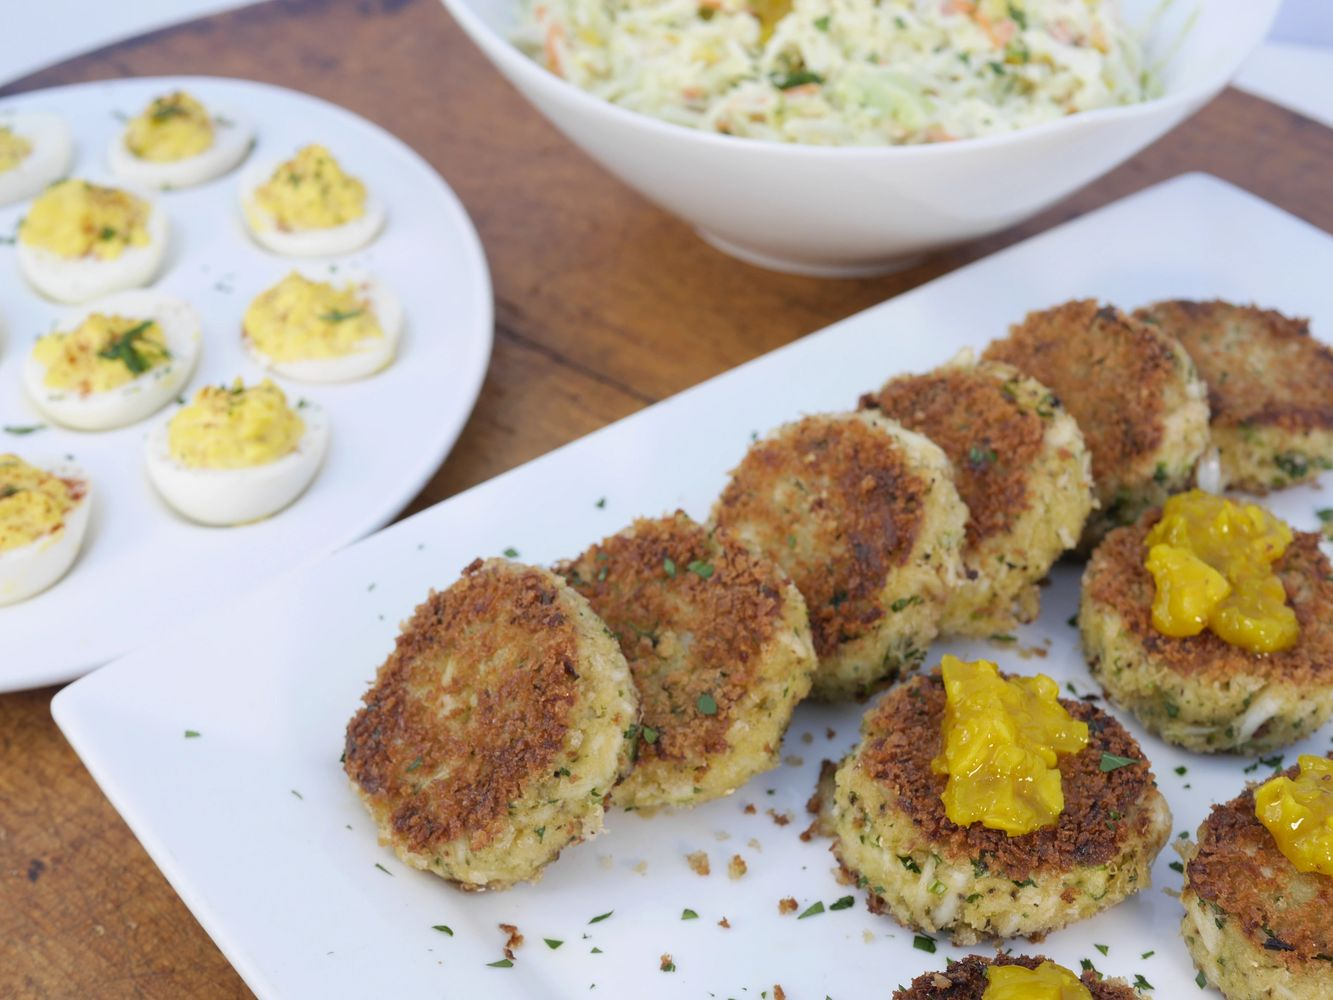 Lowcountry crabcakes and deviled eggs made with Mrs.Sassard's artichoke relish